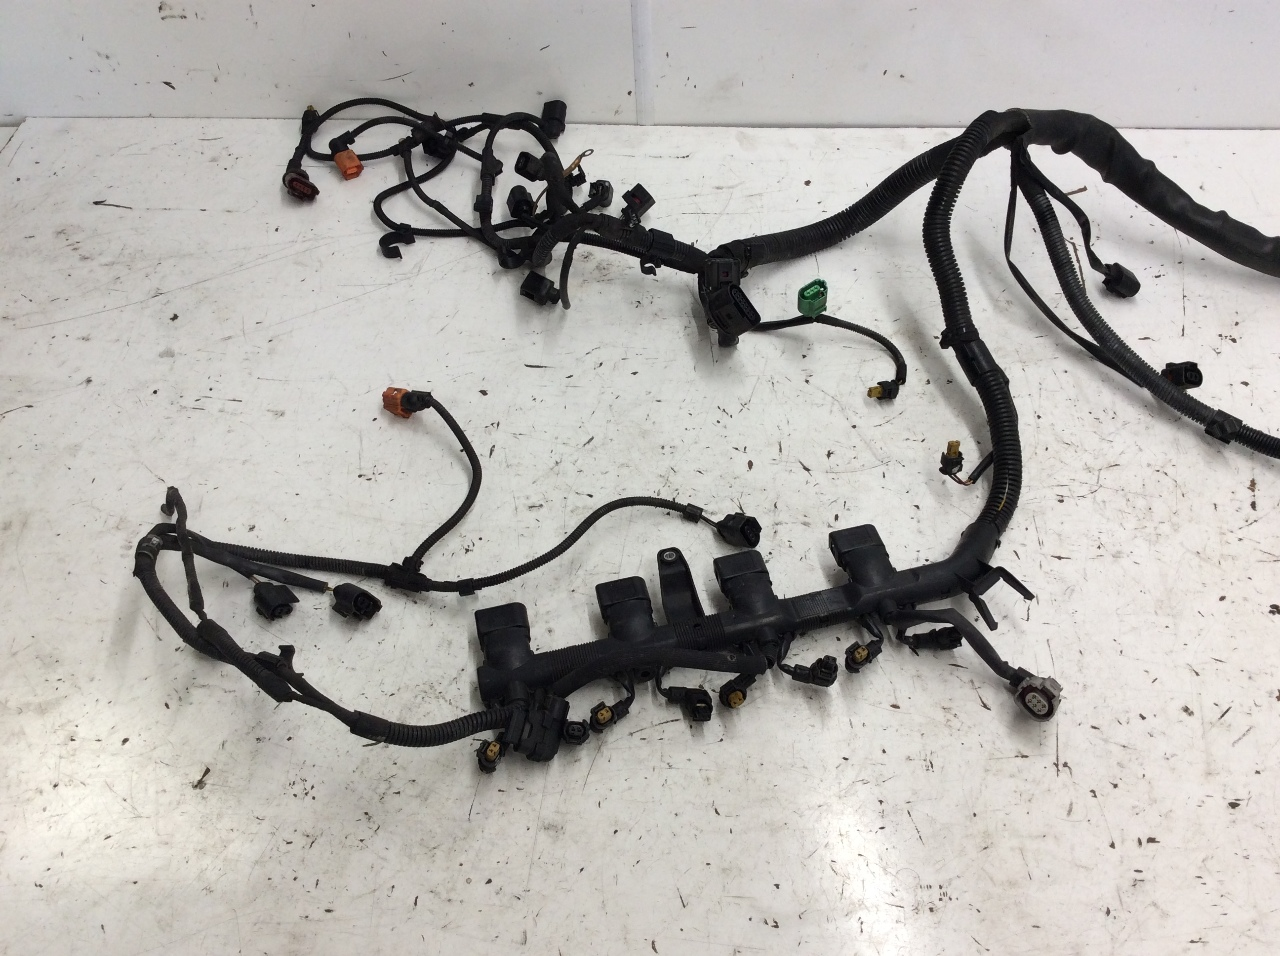 8k1971072fn-1-broken-plugs-2 Audi A Engine Wiring Harness on audi a4 transfer case, audi a4 fuel pressure regulator, audi a4 door handle, audi a4 sway bar, audi a4 ignition, audi a4 blow off valve, audi a4 torque converter, audi a4 door sill, audi a4 fuse panel, audi a4 relay, audi a4 rear speakers, audi a4 clutch master cylinder, audi a4 timing chain, audi a4 license plate holder, audi a4 oil drain plug, audi a4 audio upgrade, audi a4 bug deflector, audi a4 sensors, audi a4 wiper arms, audi a4 computer,